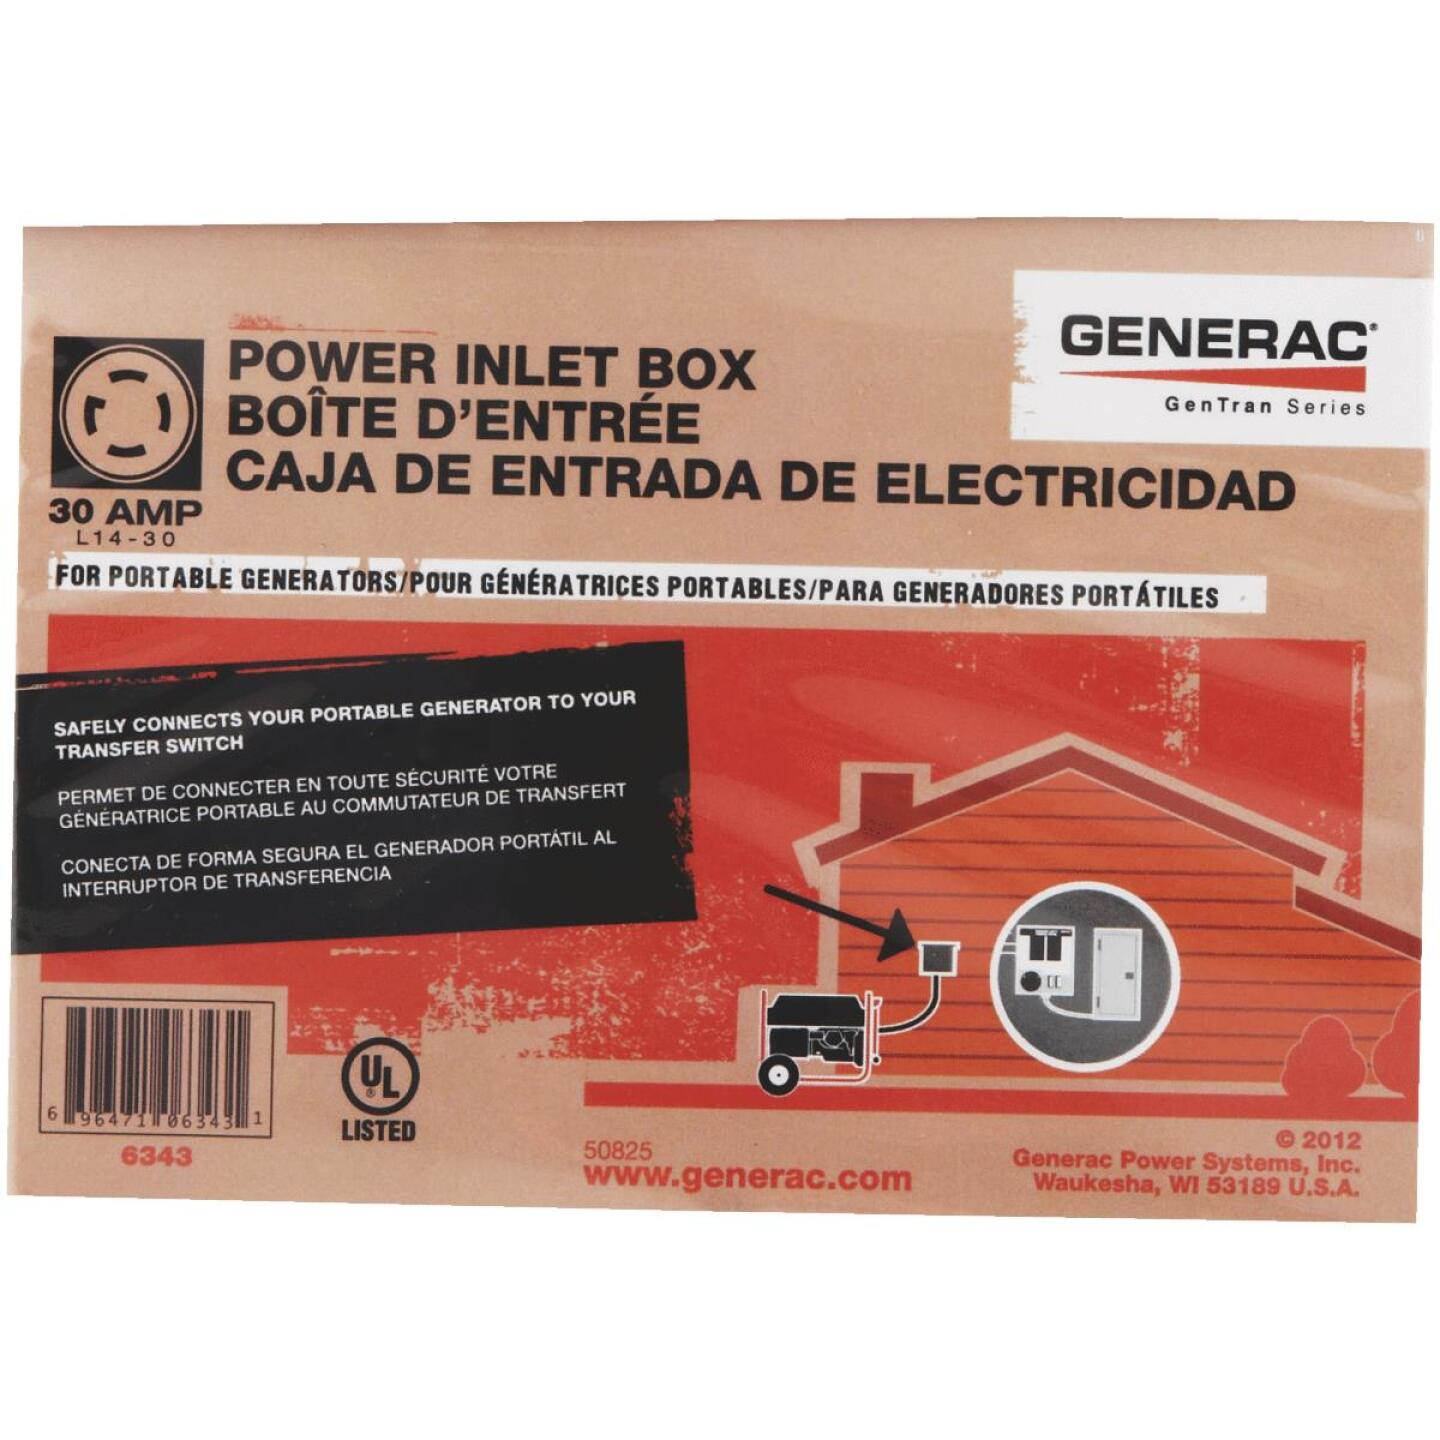 Generac 30A Outdoor Generator Power Inlet Box Image 2